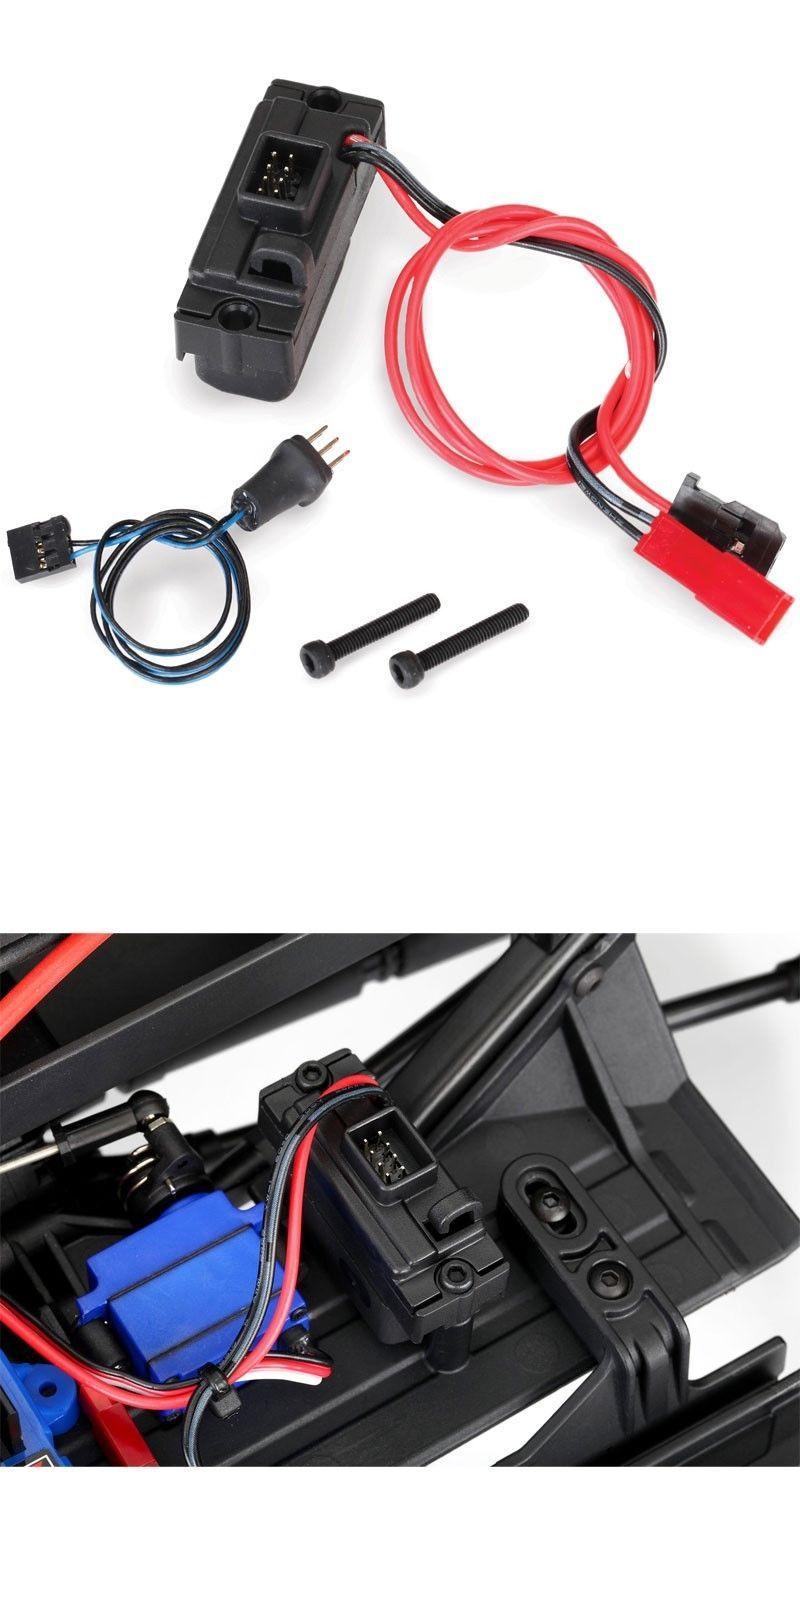 medium resolution of lighting and lamps 182177 traxxas 8028 trx 4 power supply and wiring harness for led lights tra8028 buy it now only 19 95 on ebay